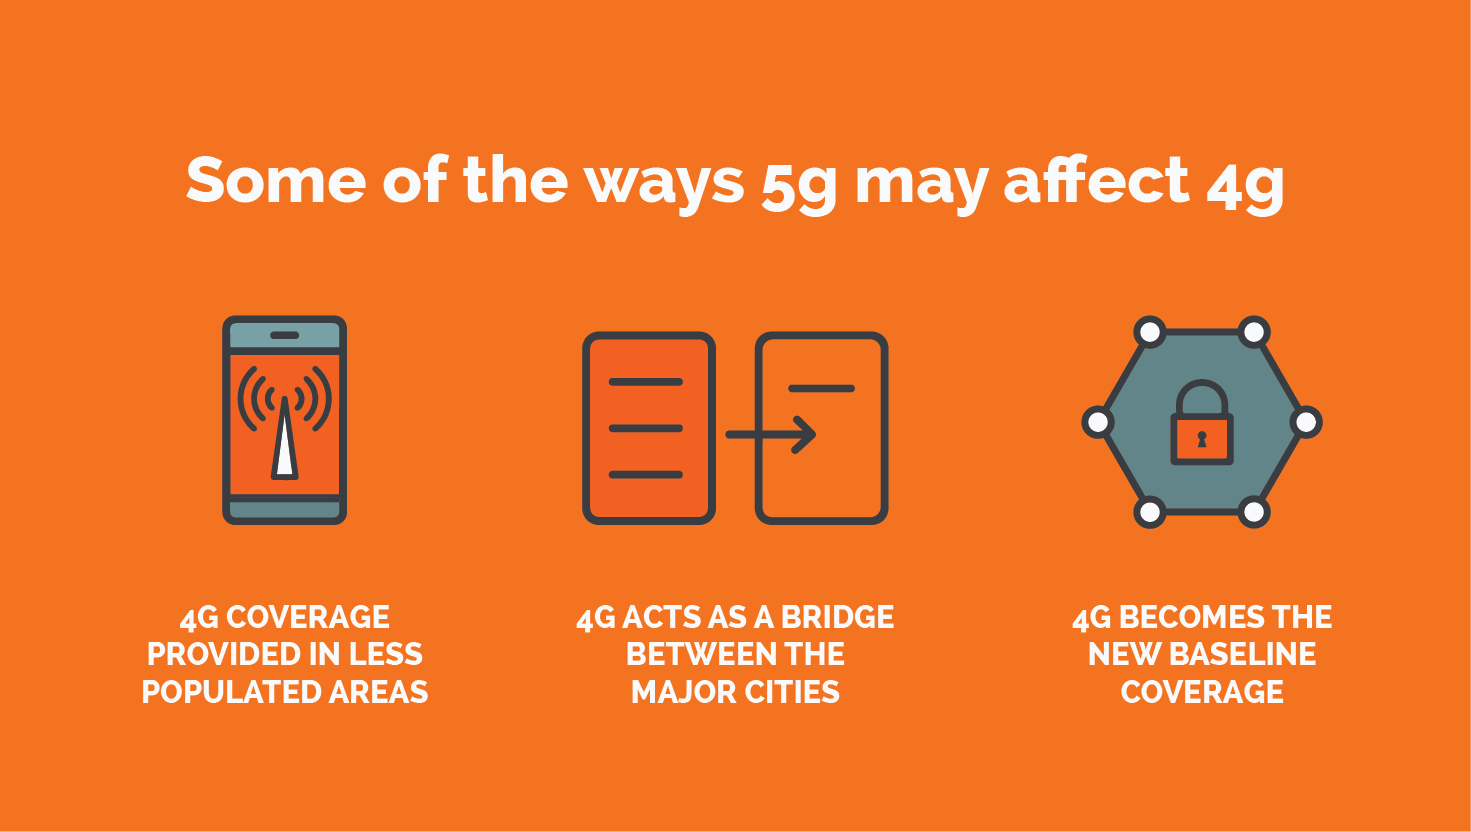 4g vs 5g network - which is better?